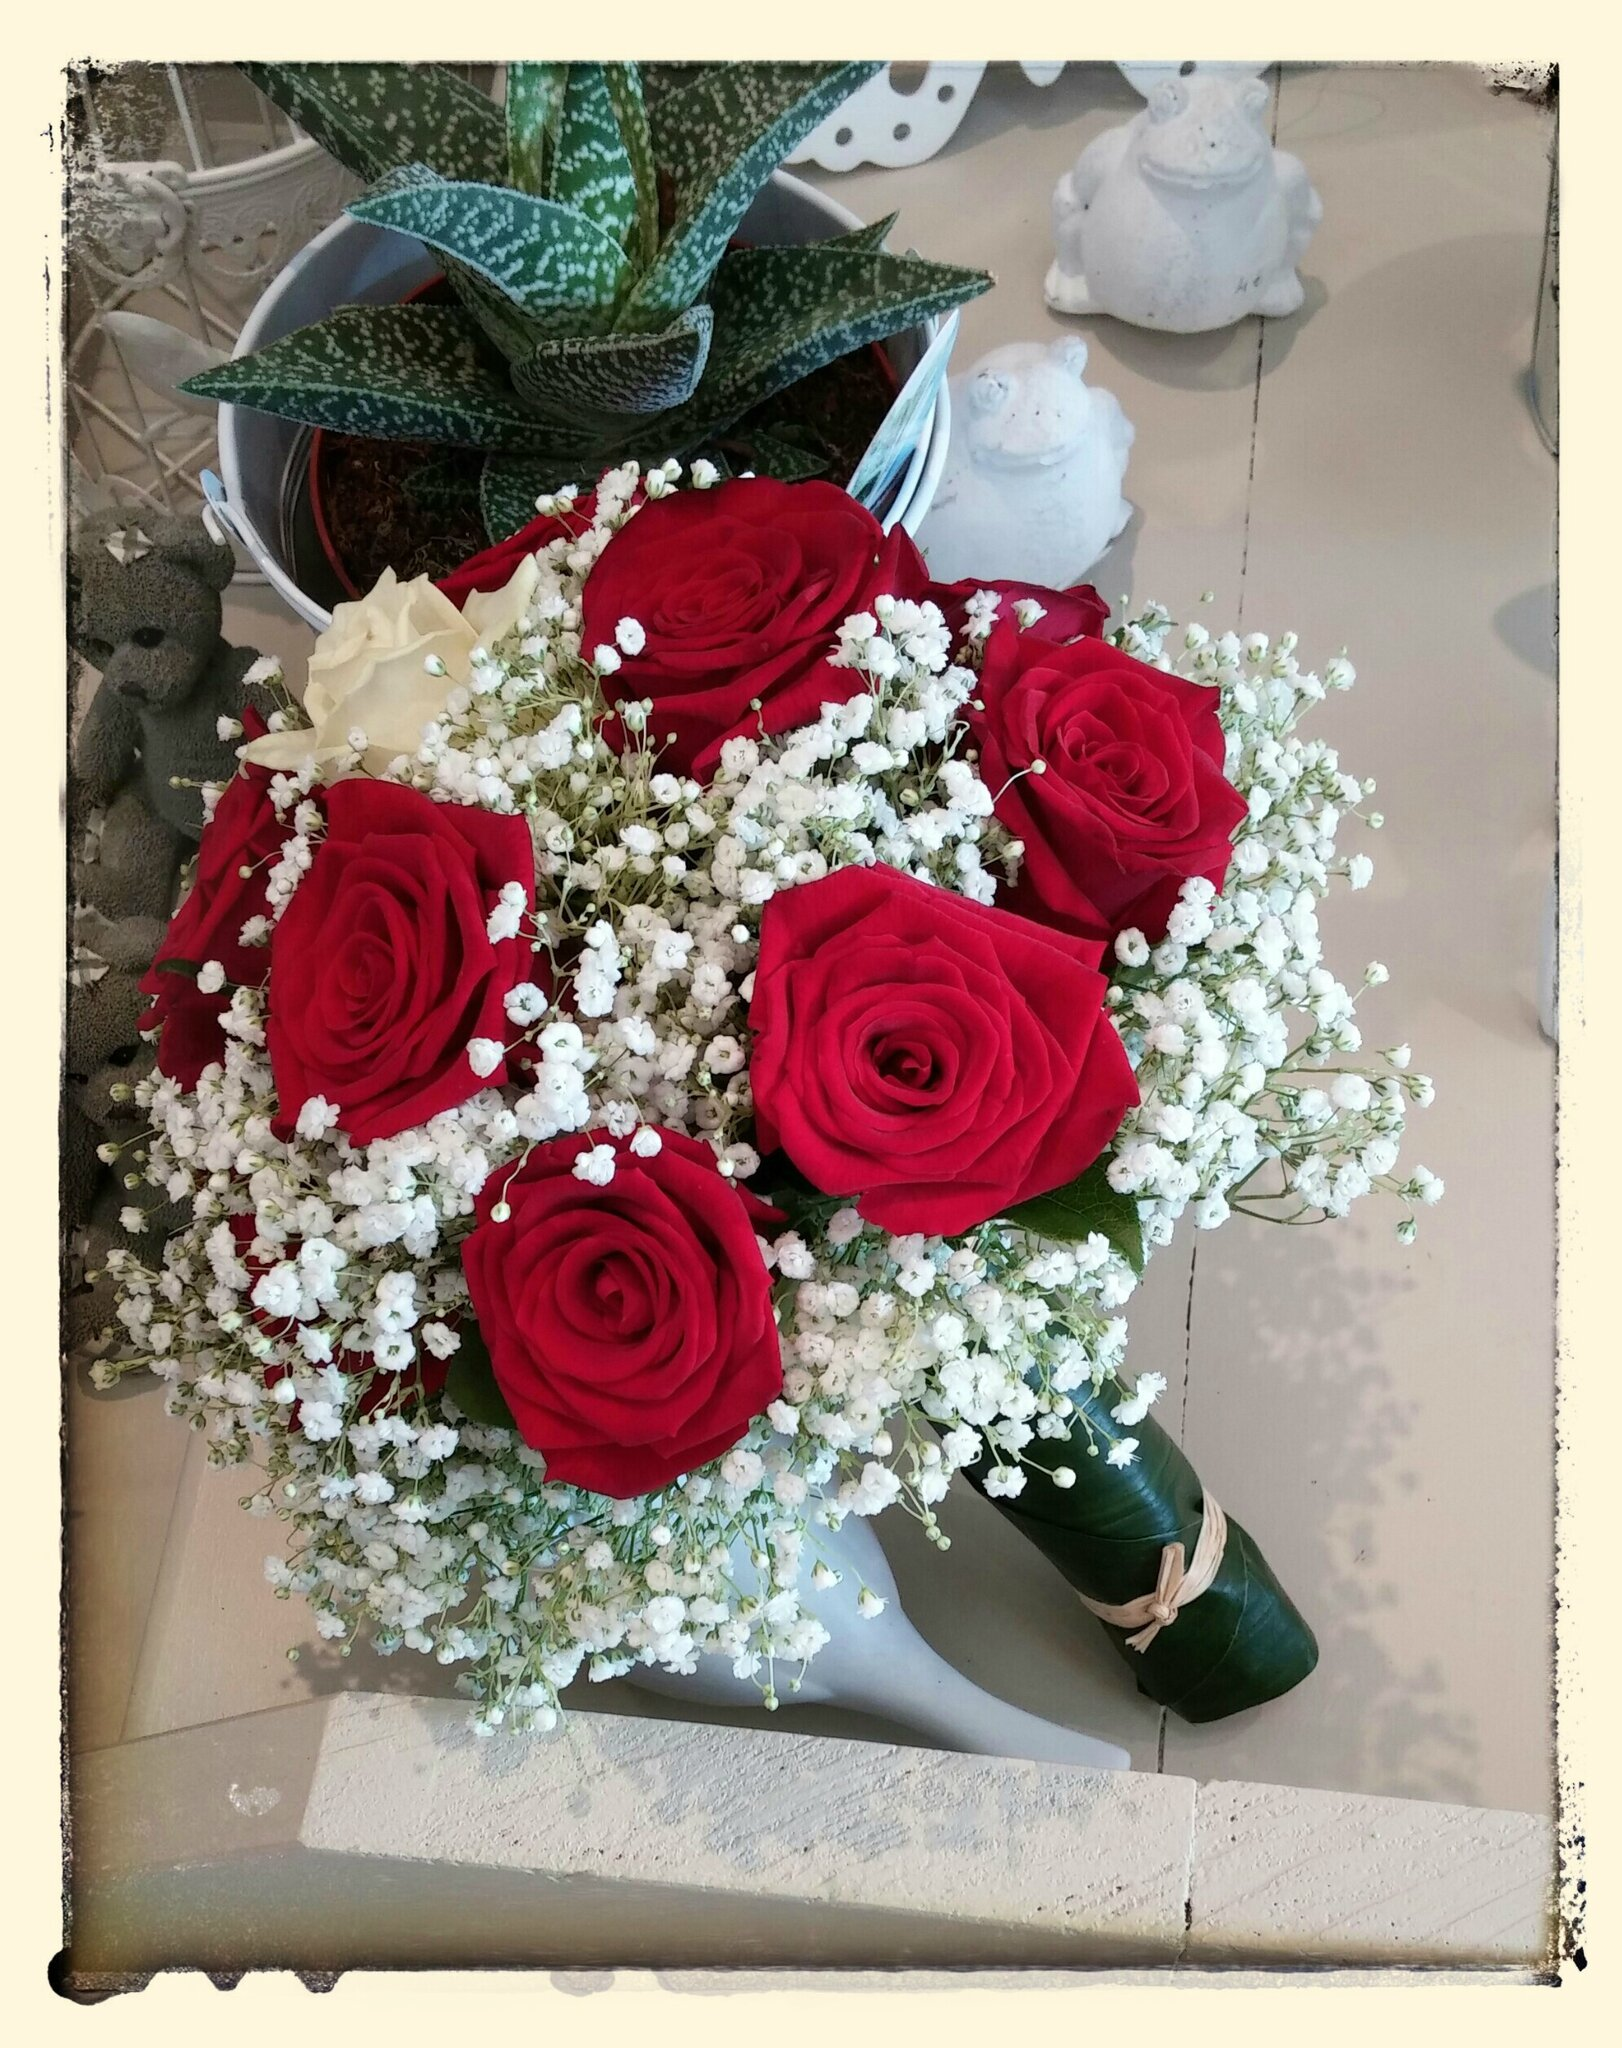 Bouquet de mari e rond rouge et blanc 50 euros photo de - Bouquet rose rouge et blanche ...